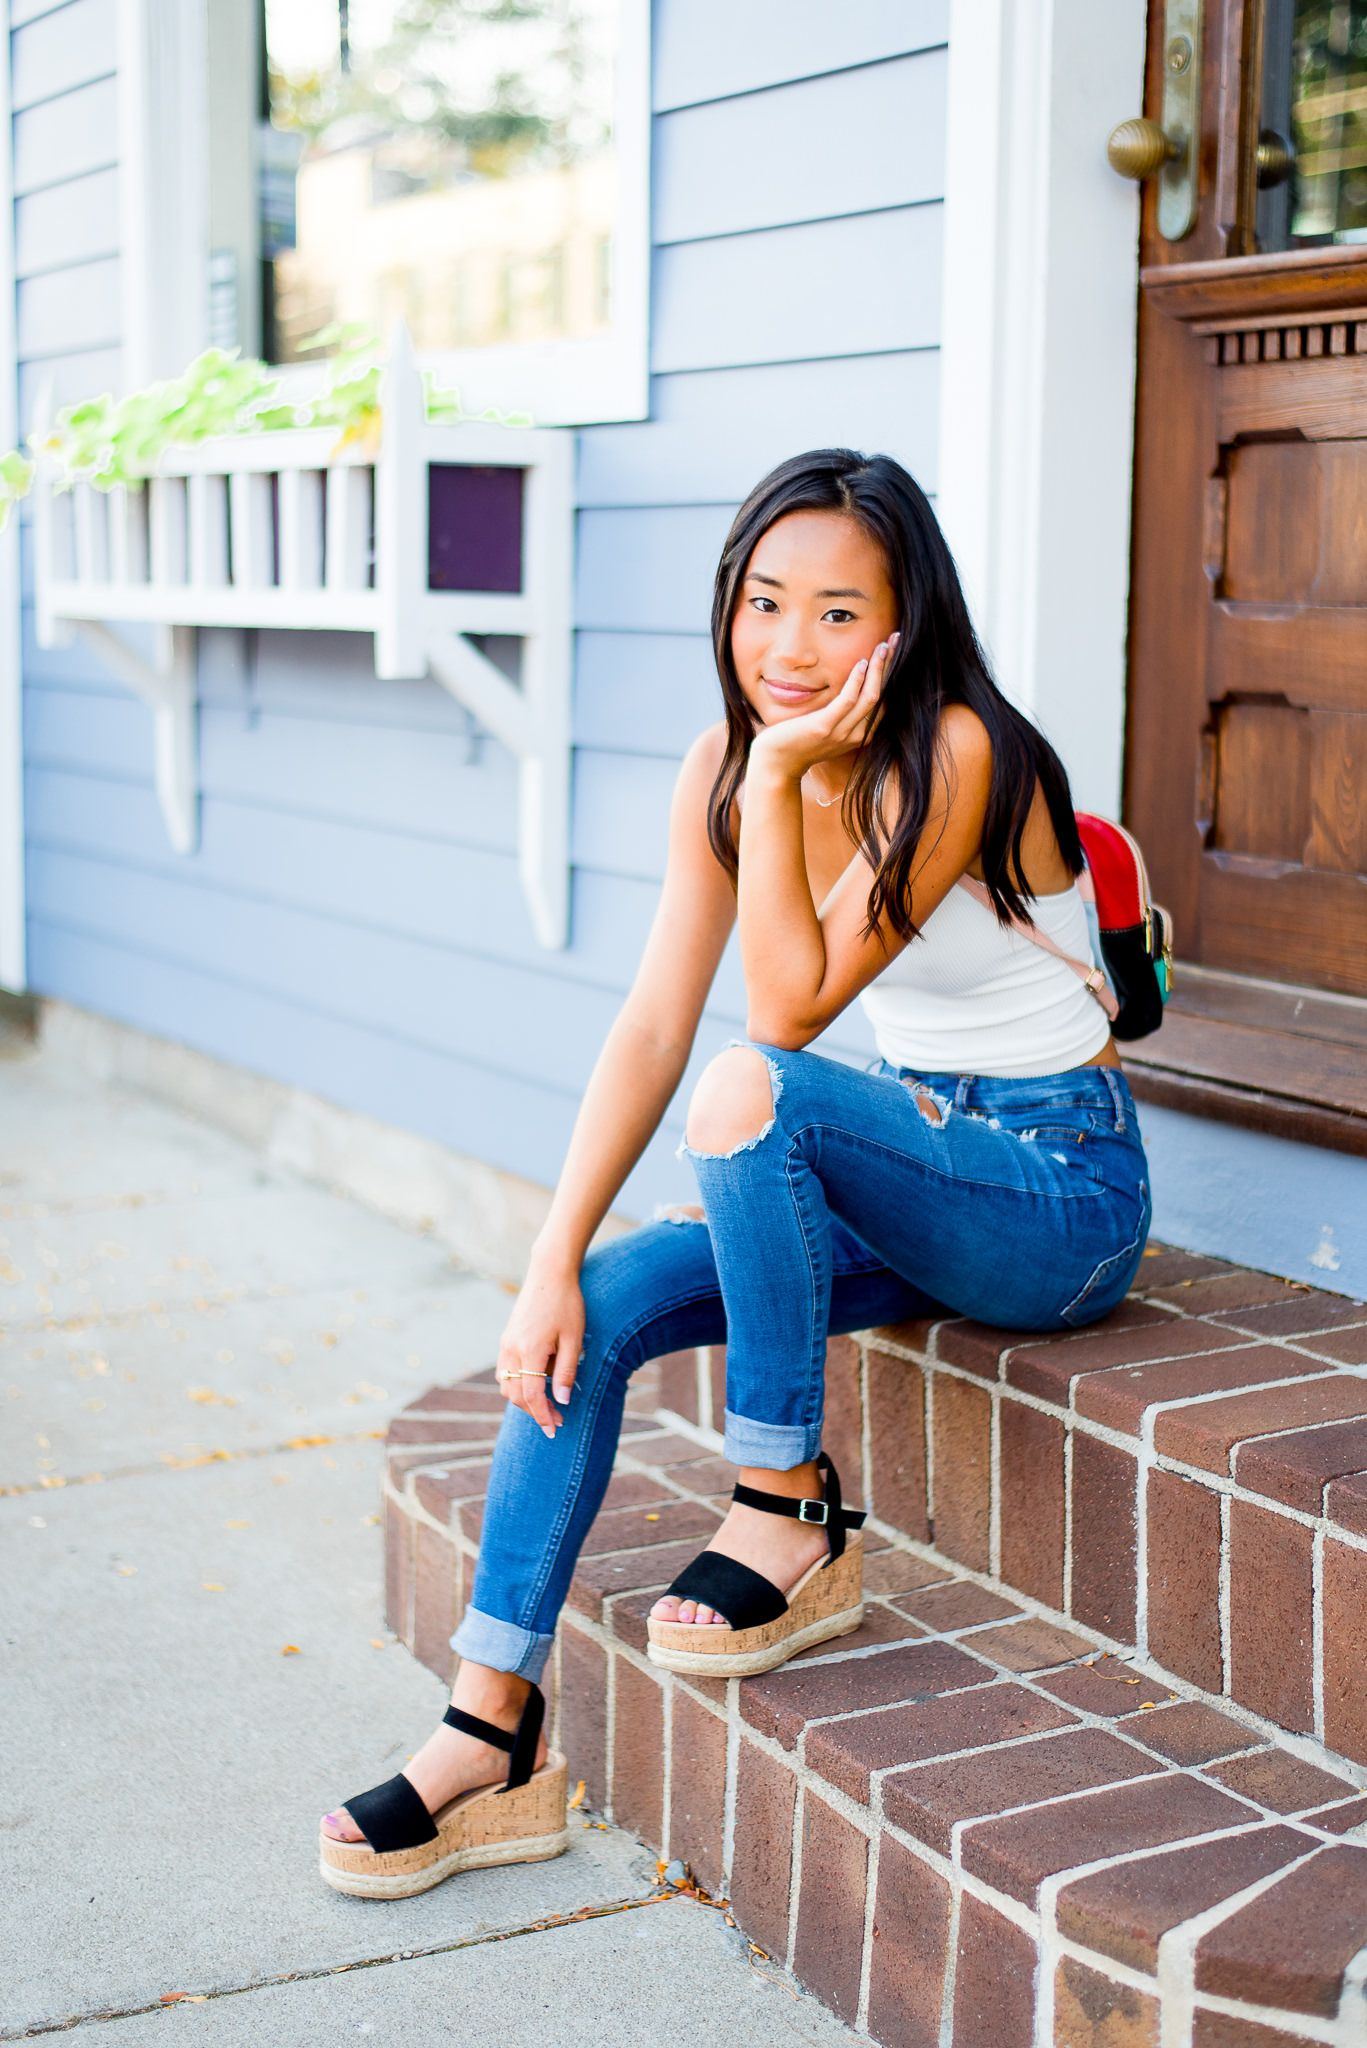 high school senior girl sitting on a stoop smiling with hand on face